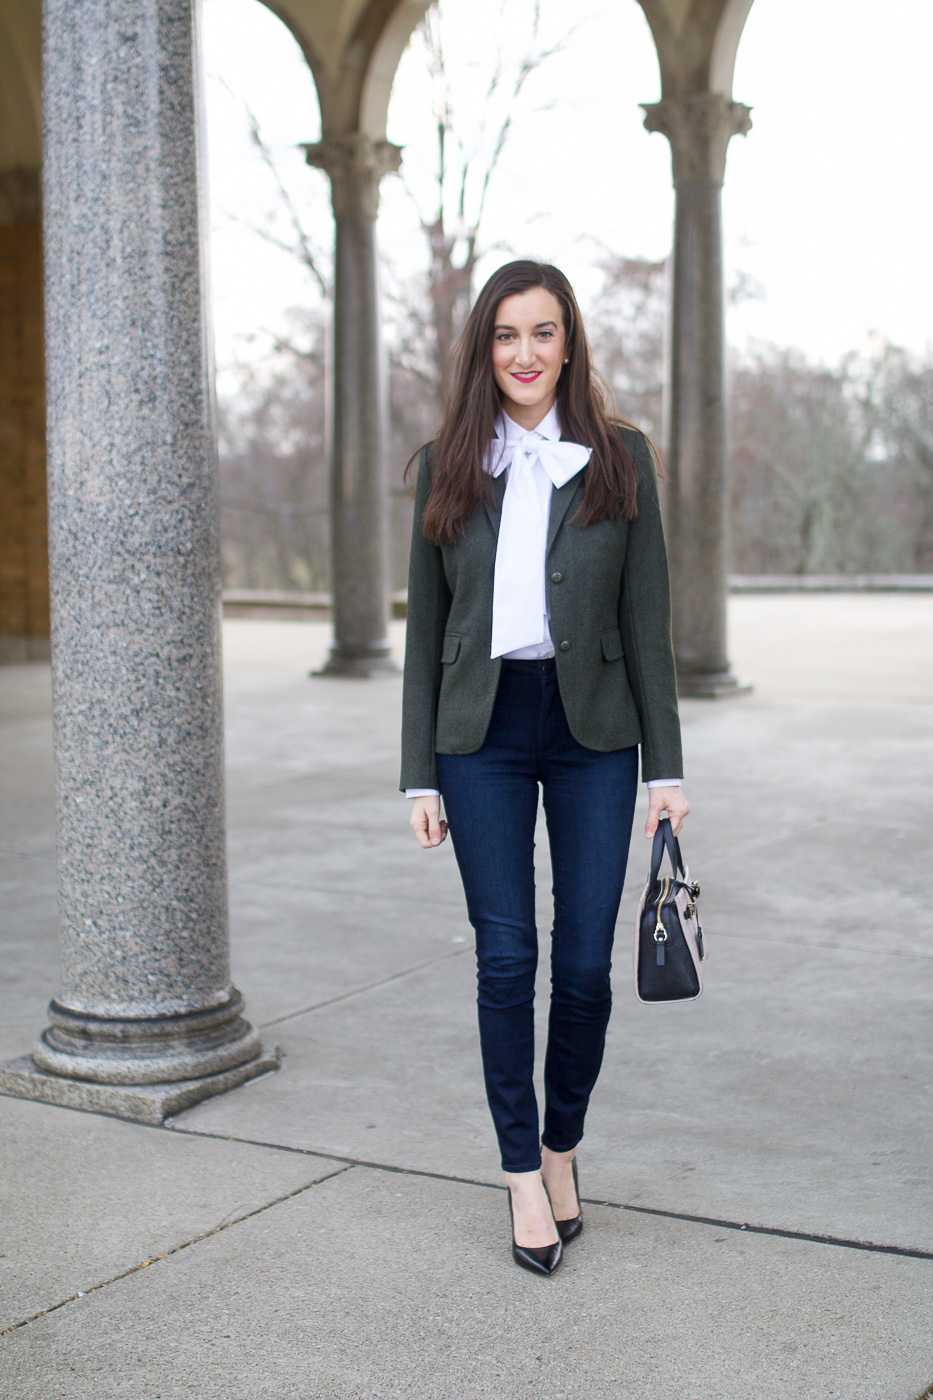 White Bow Blouse with Blazer